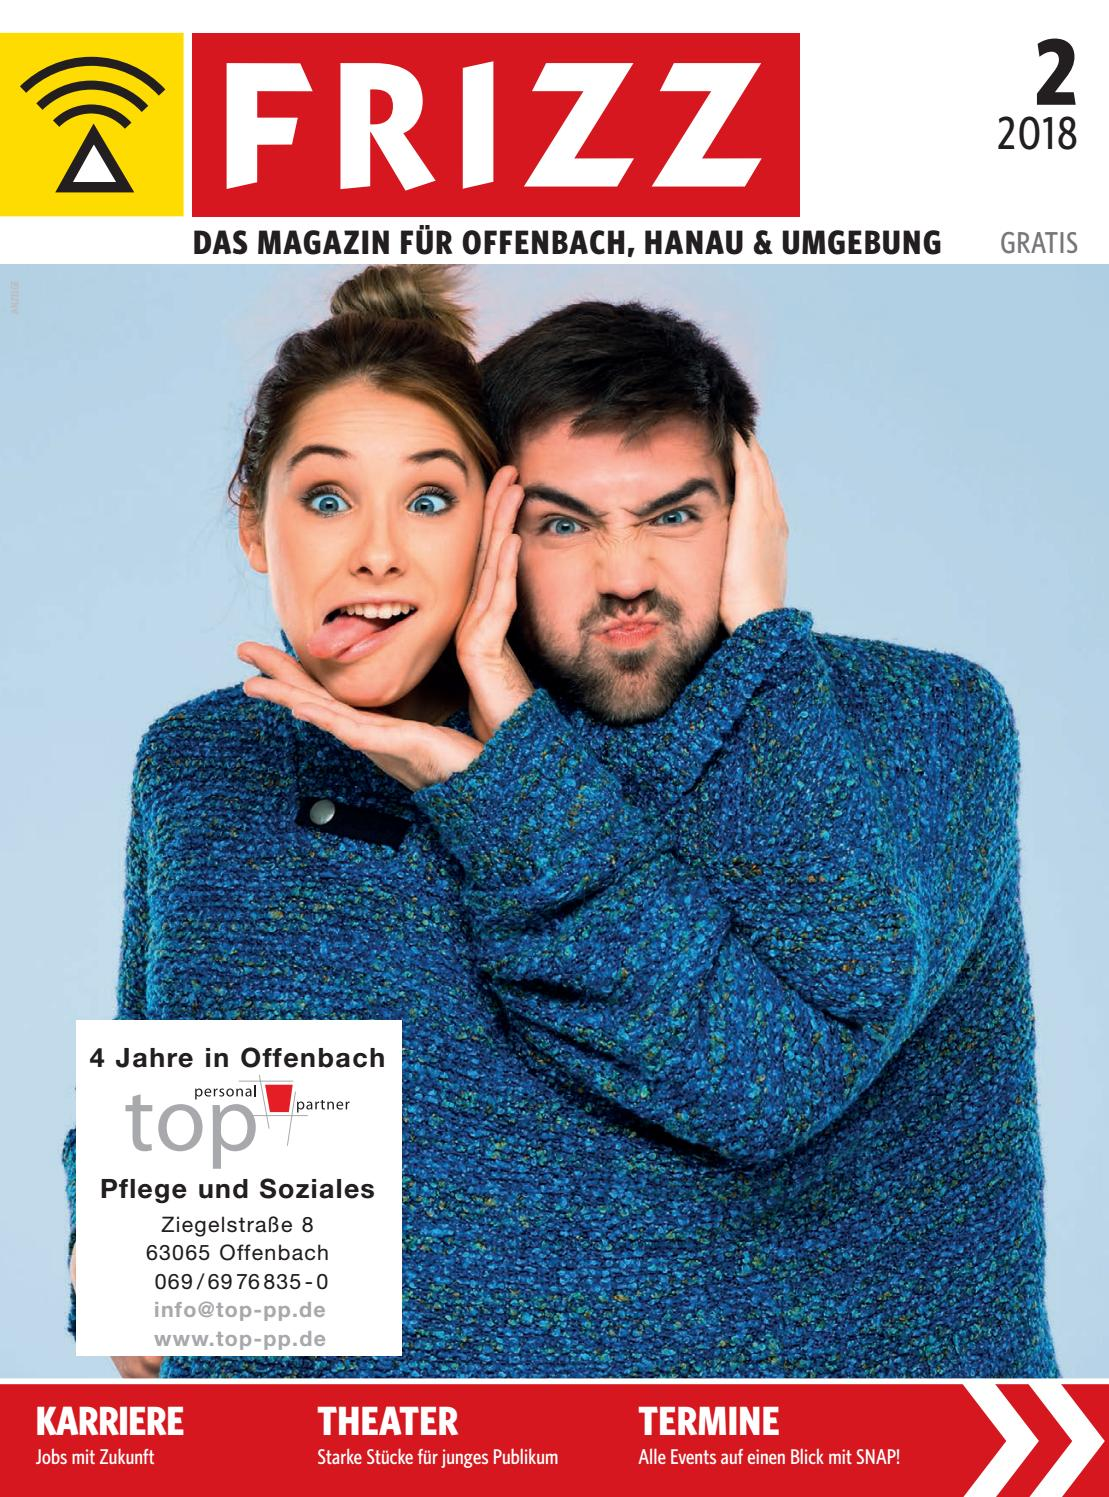 FRIZZ Das Magazin Fenbach Februar 2018 By Frizz Fenbach Issuu